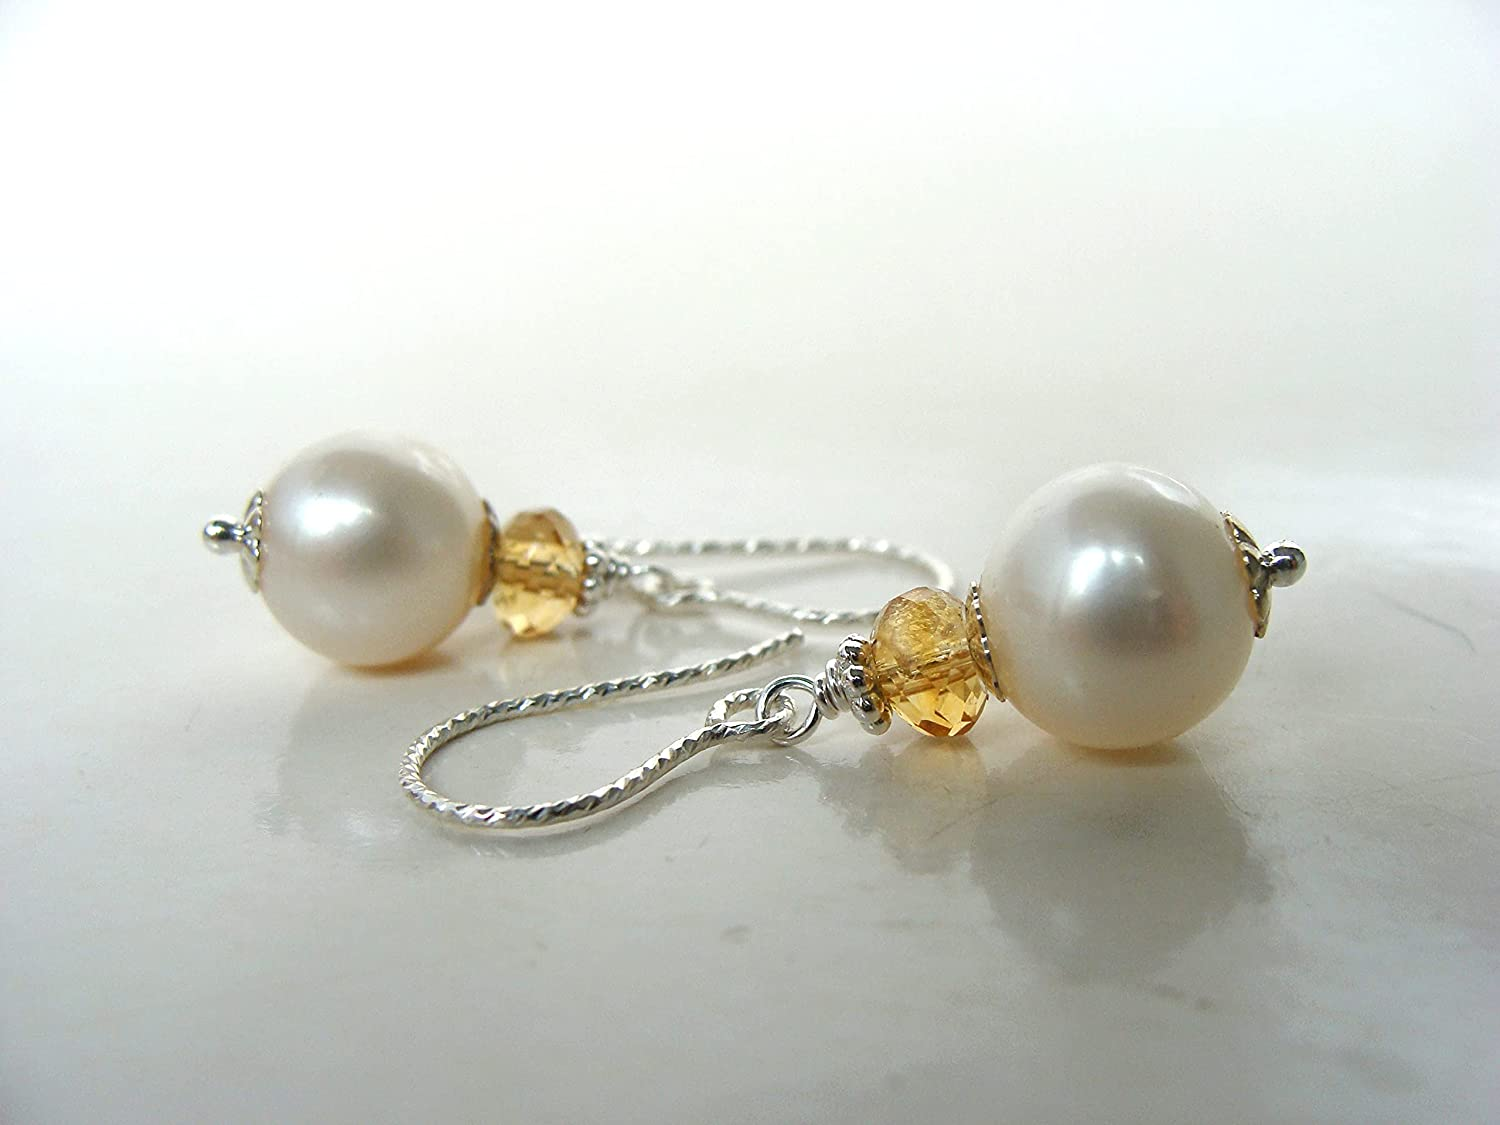 Dainty citrine and pearl Max 68% OFF Great interest earrings white yellow small pear 9mm